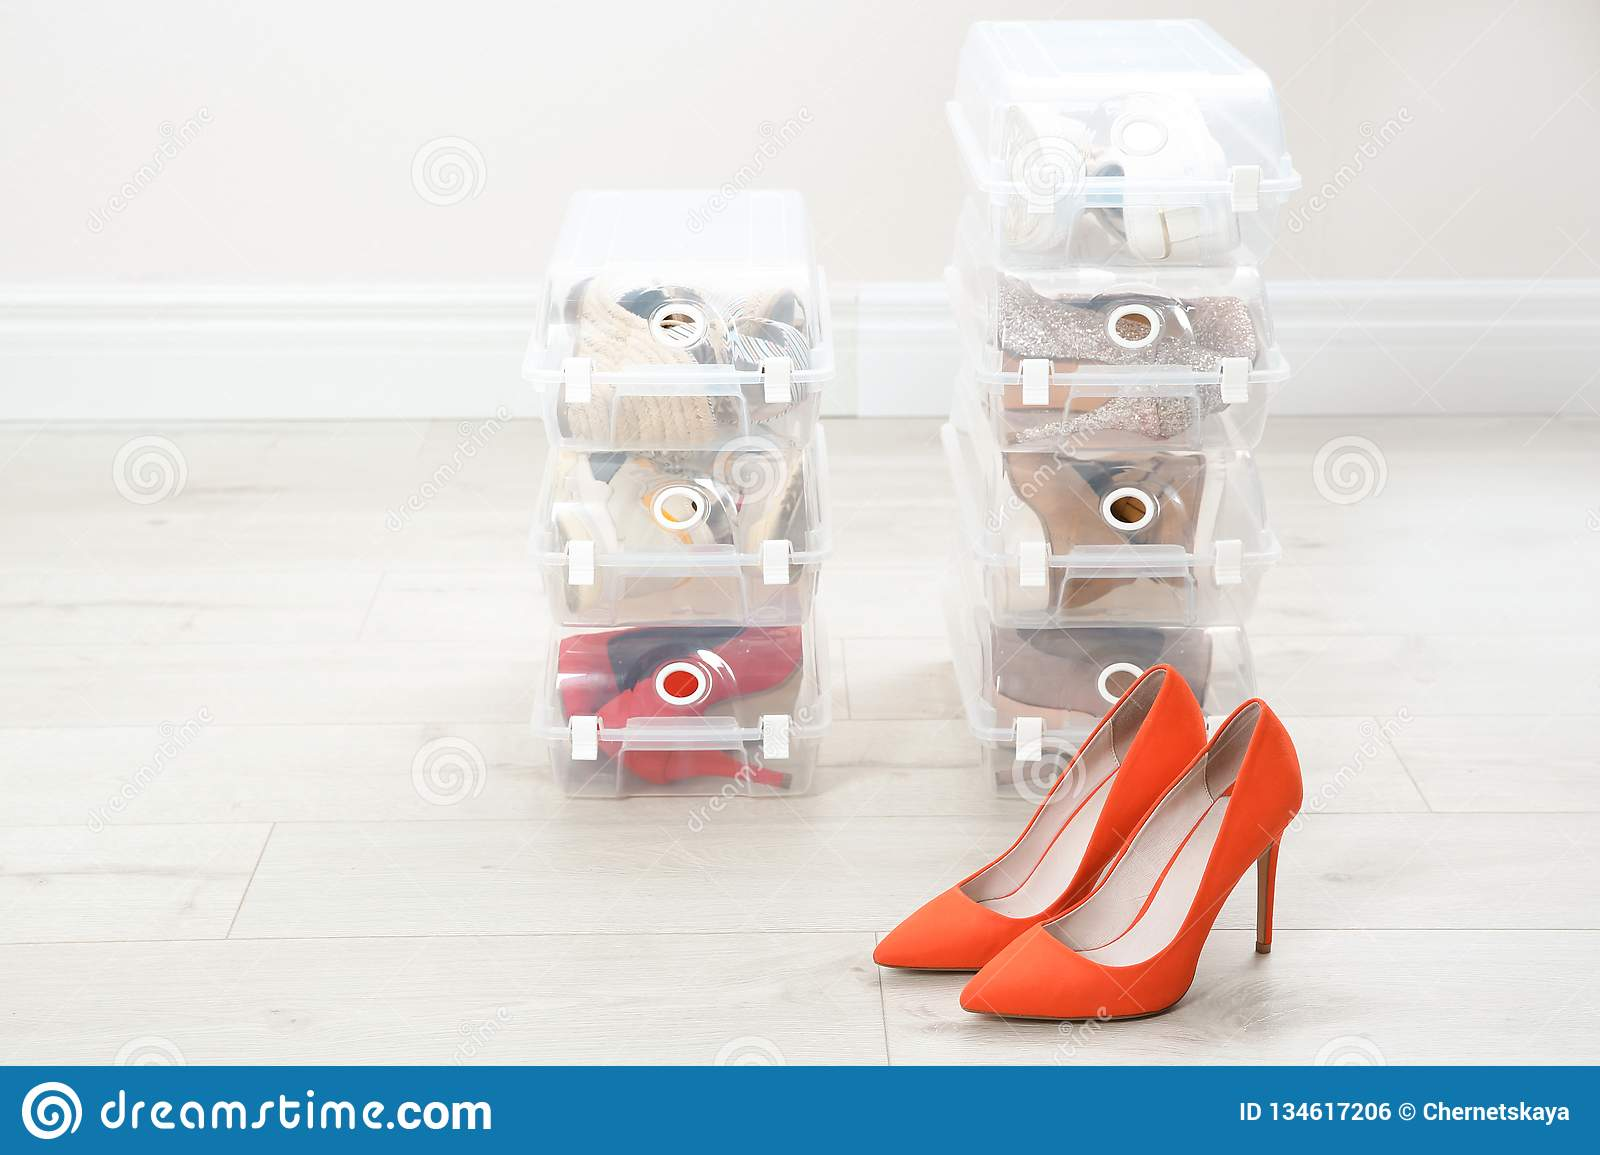 Pair of female shoes and other footwear in plastic boxes